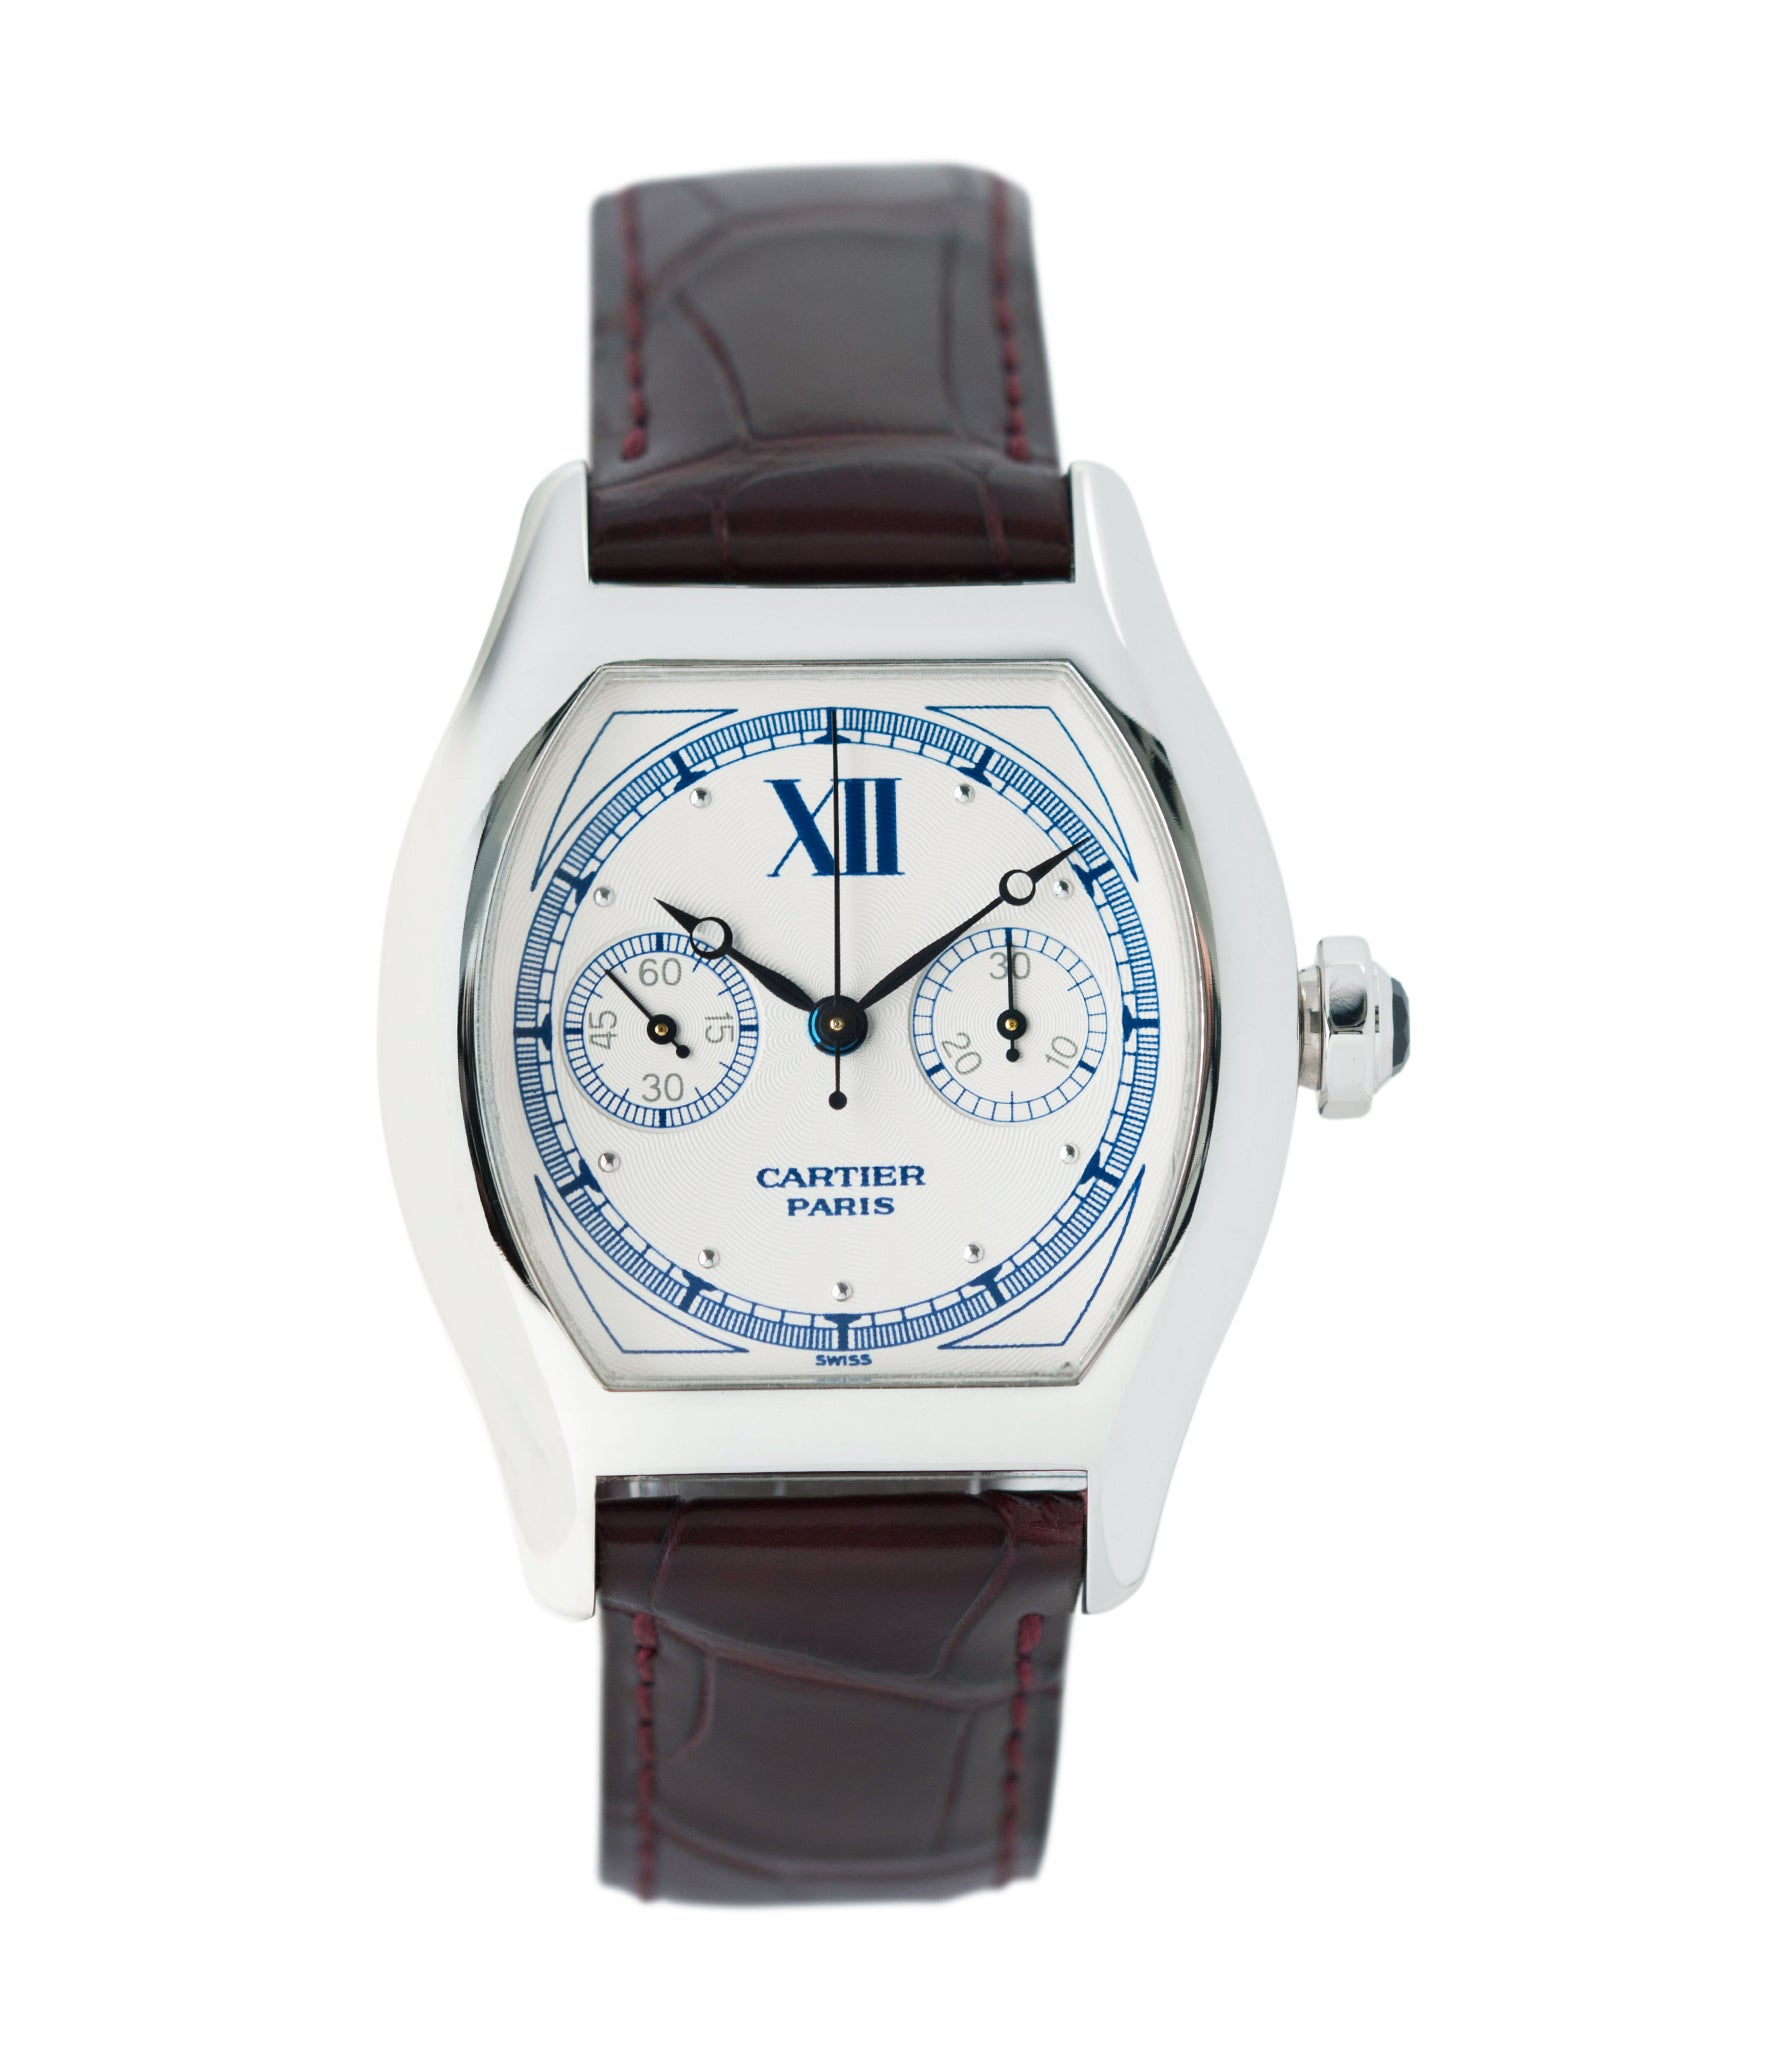 buy Cartier Monopusher Monopoussoir ref. 2396 white gold dress watch with  THA ebauche for sale